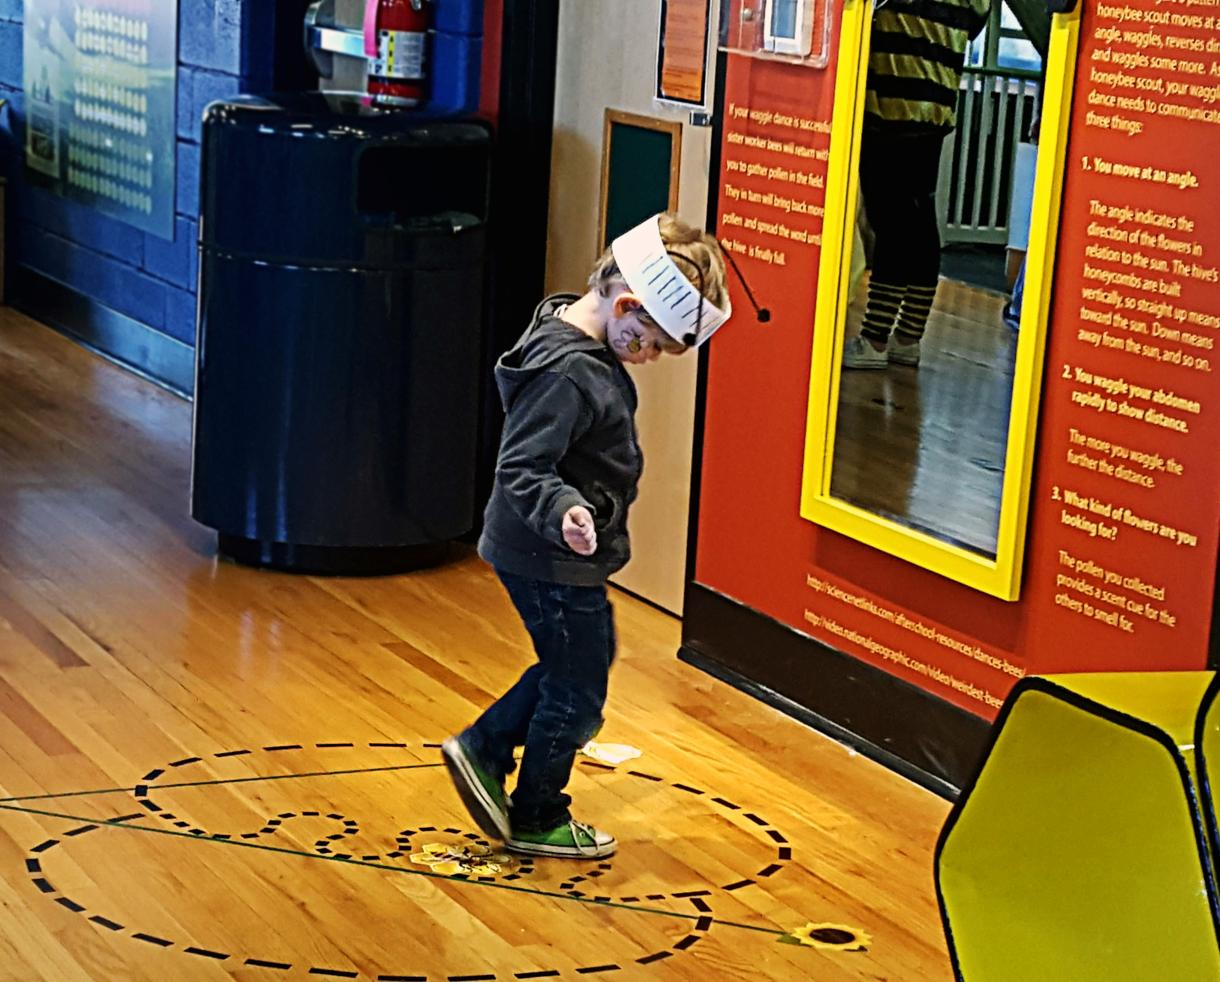 $12 for TWO Admissions to the Shenandoah Valley Discovery Museum - Winchester, VA ($16 Value - 25% Off)